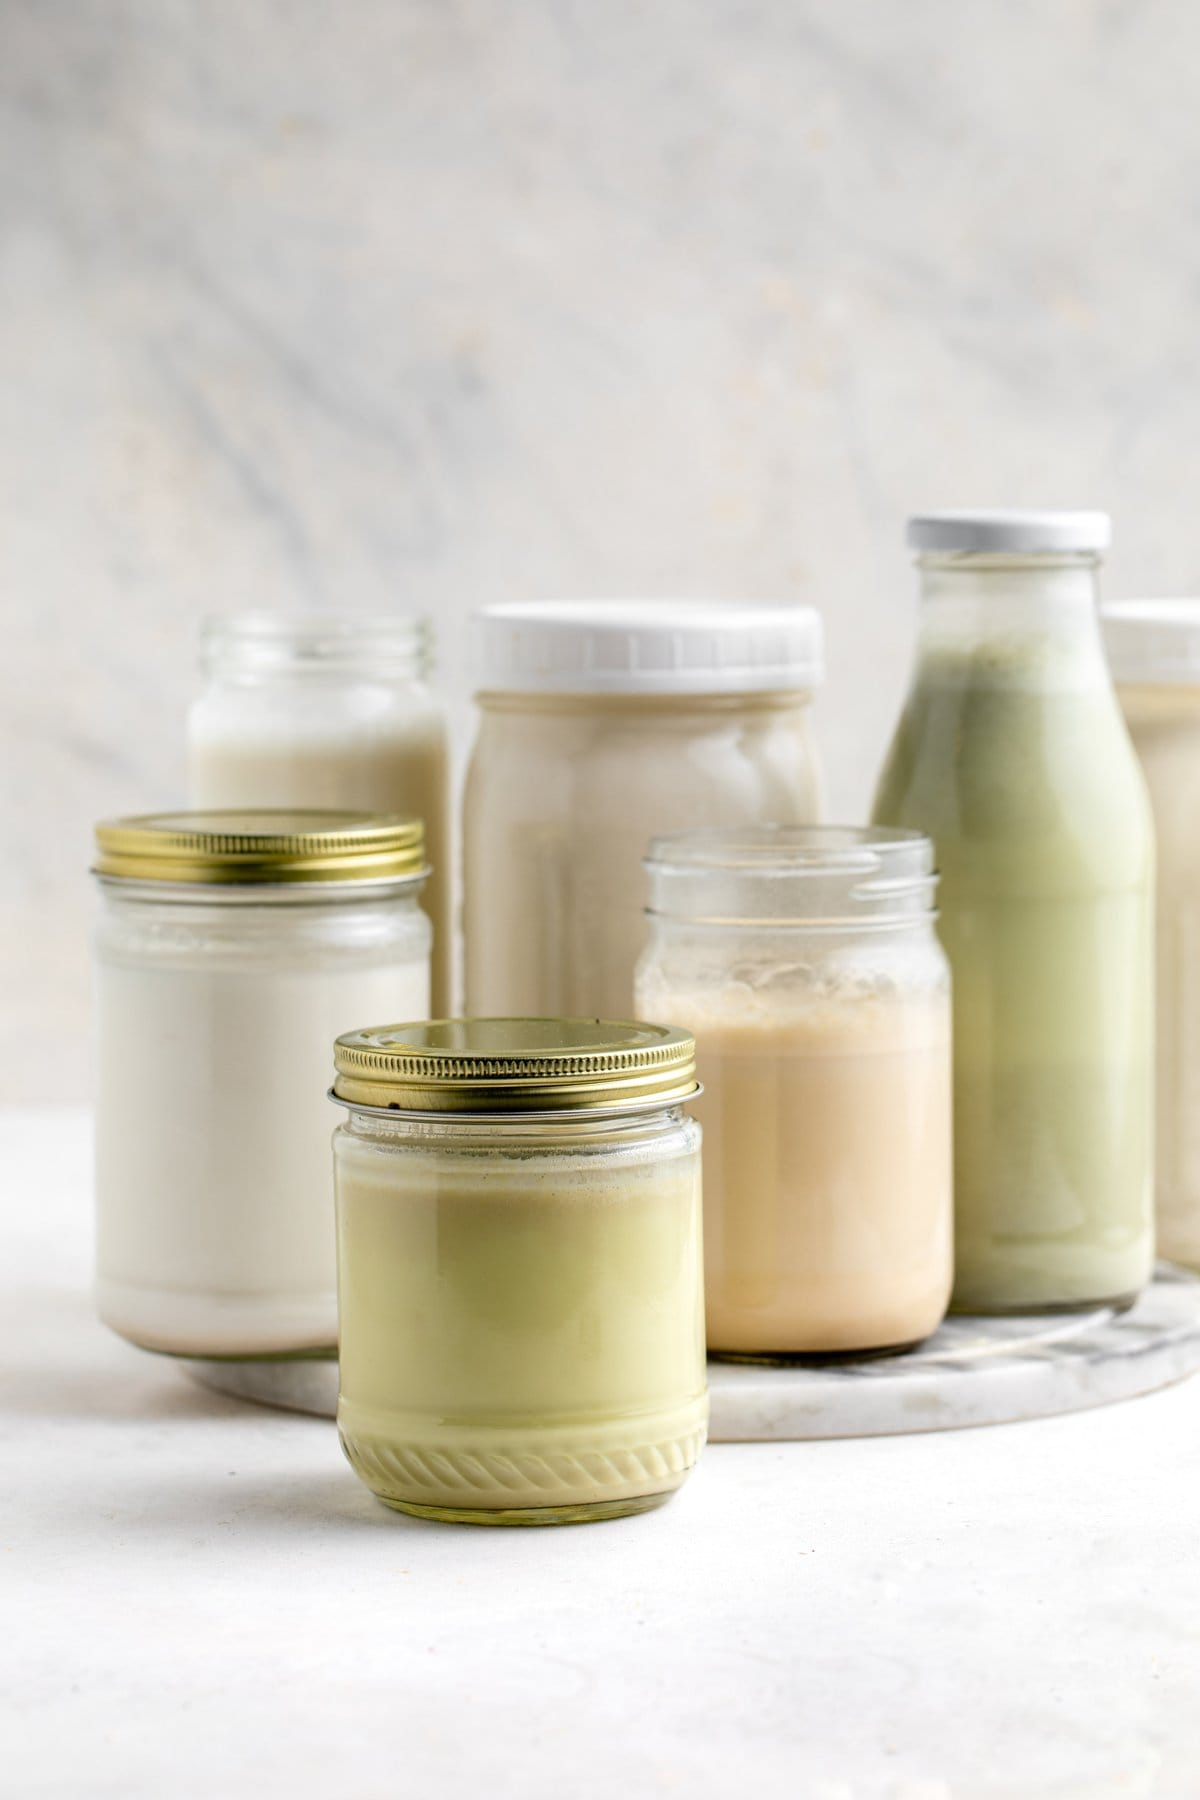 homemade nut milks in different sized glass jars on white background